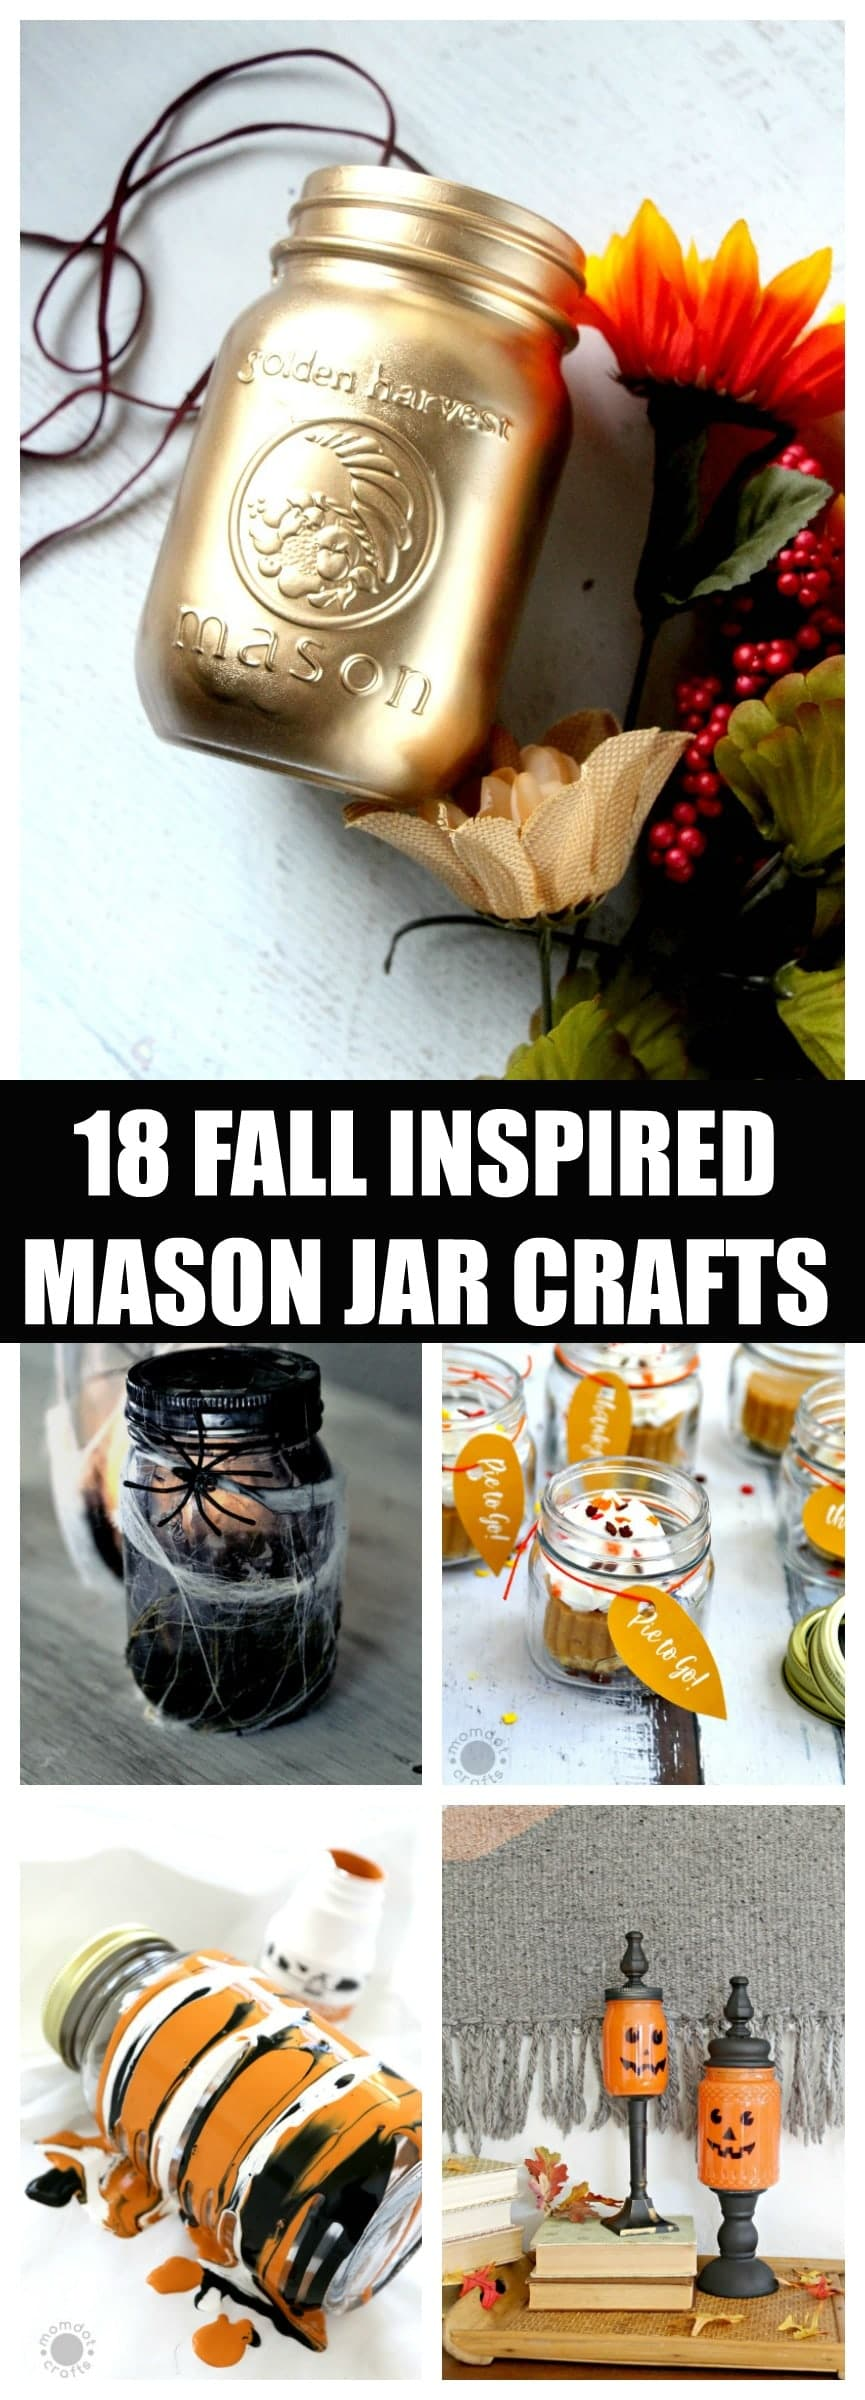 18 Fall Mason Jar Crafts To Inspire You